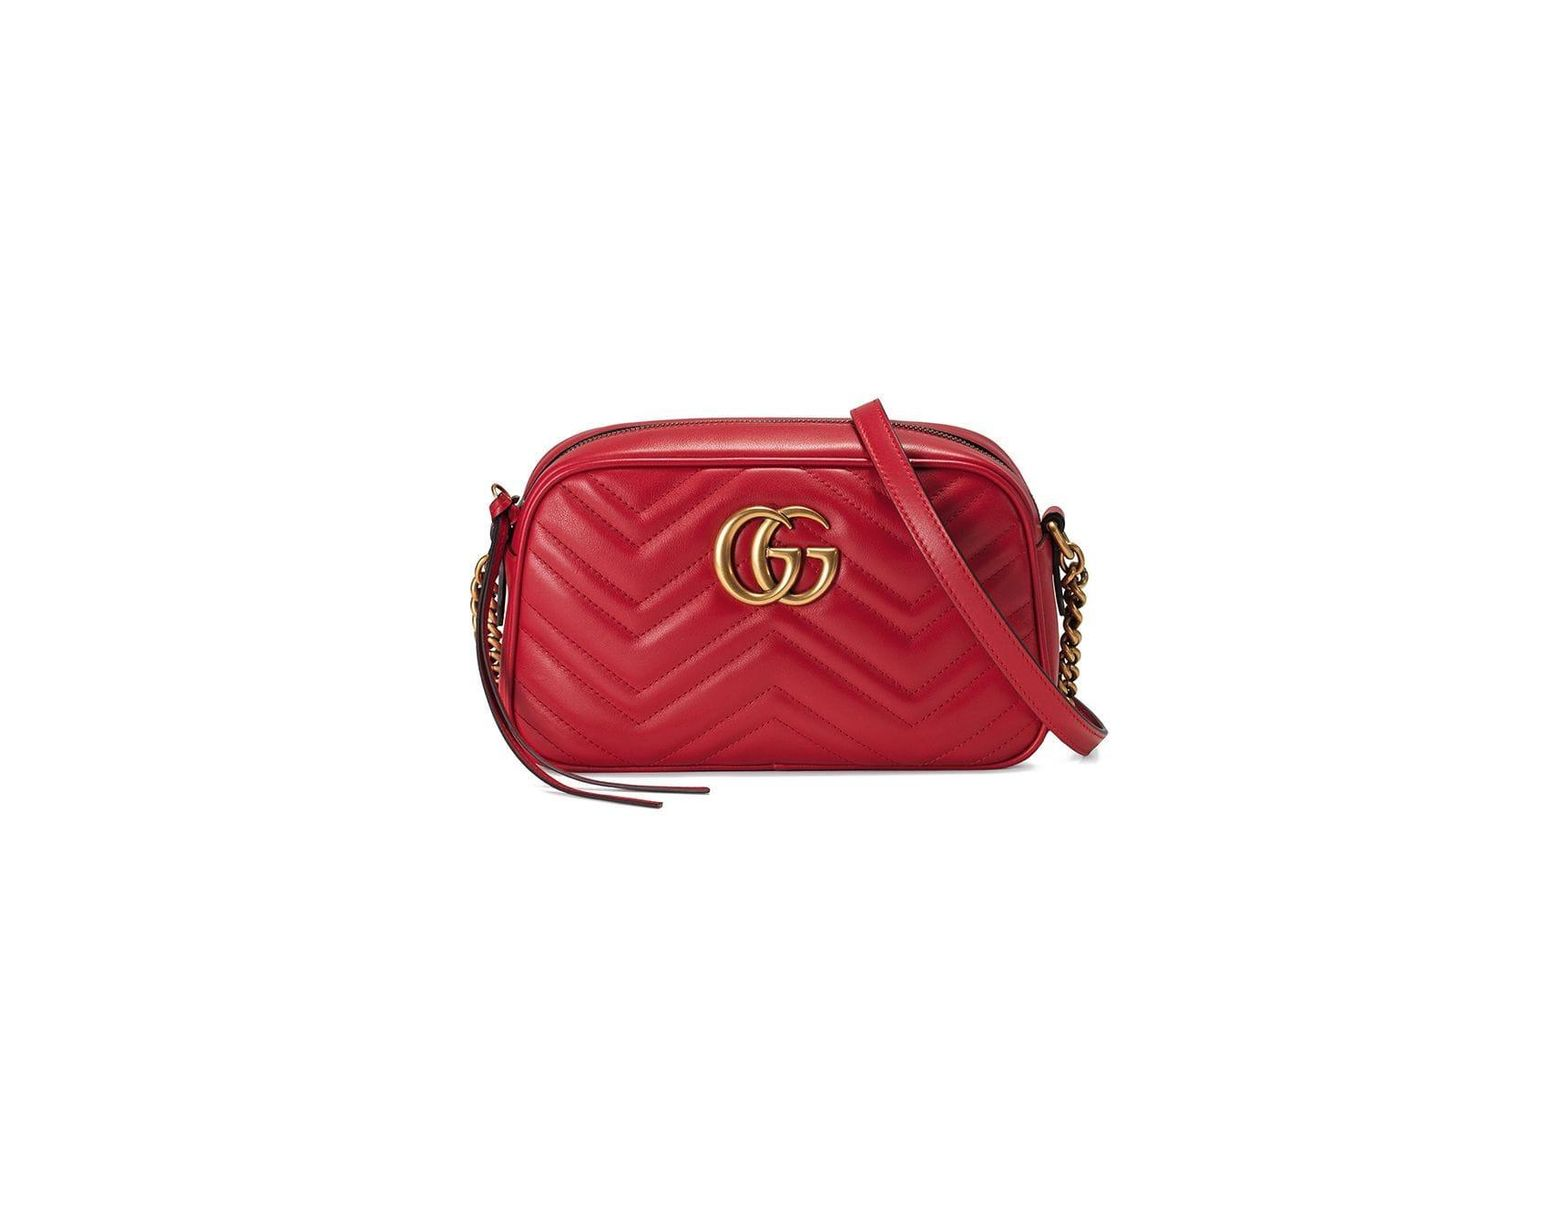 20a7b889b Gucci GG Marmont Small Matelassé Shoulder Bag in Red - Lyst